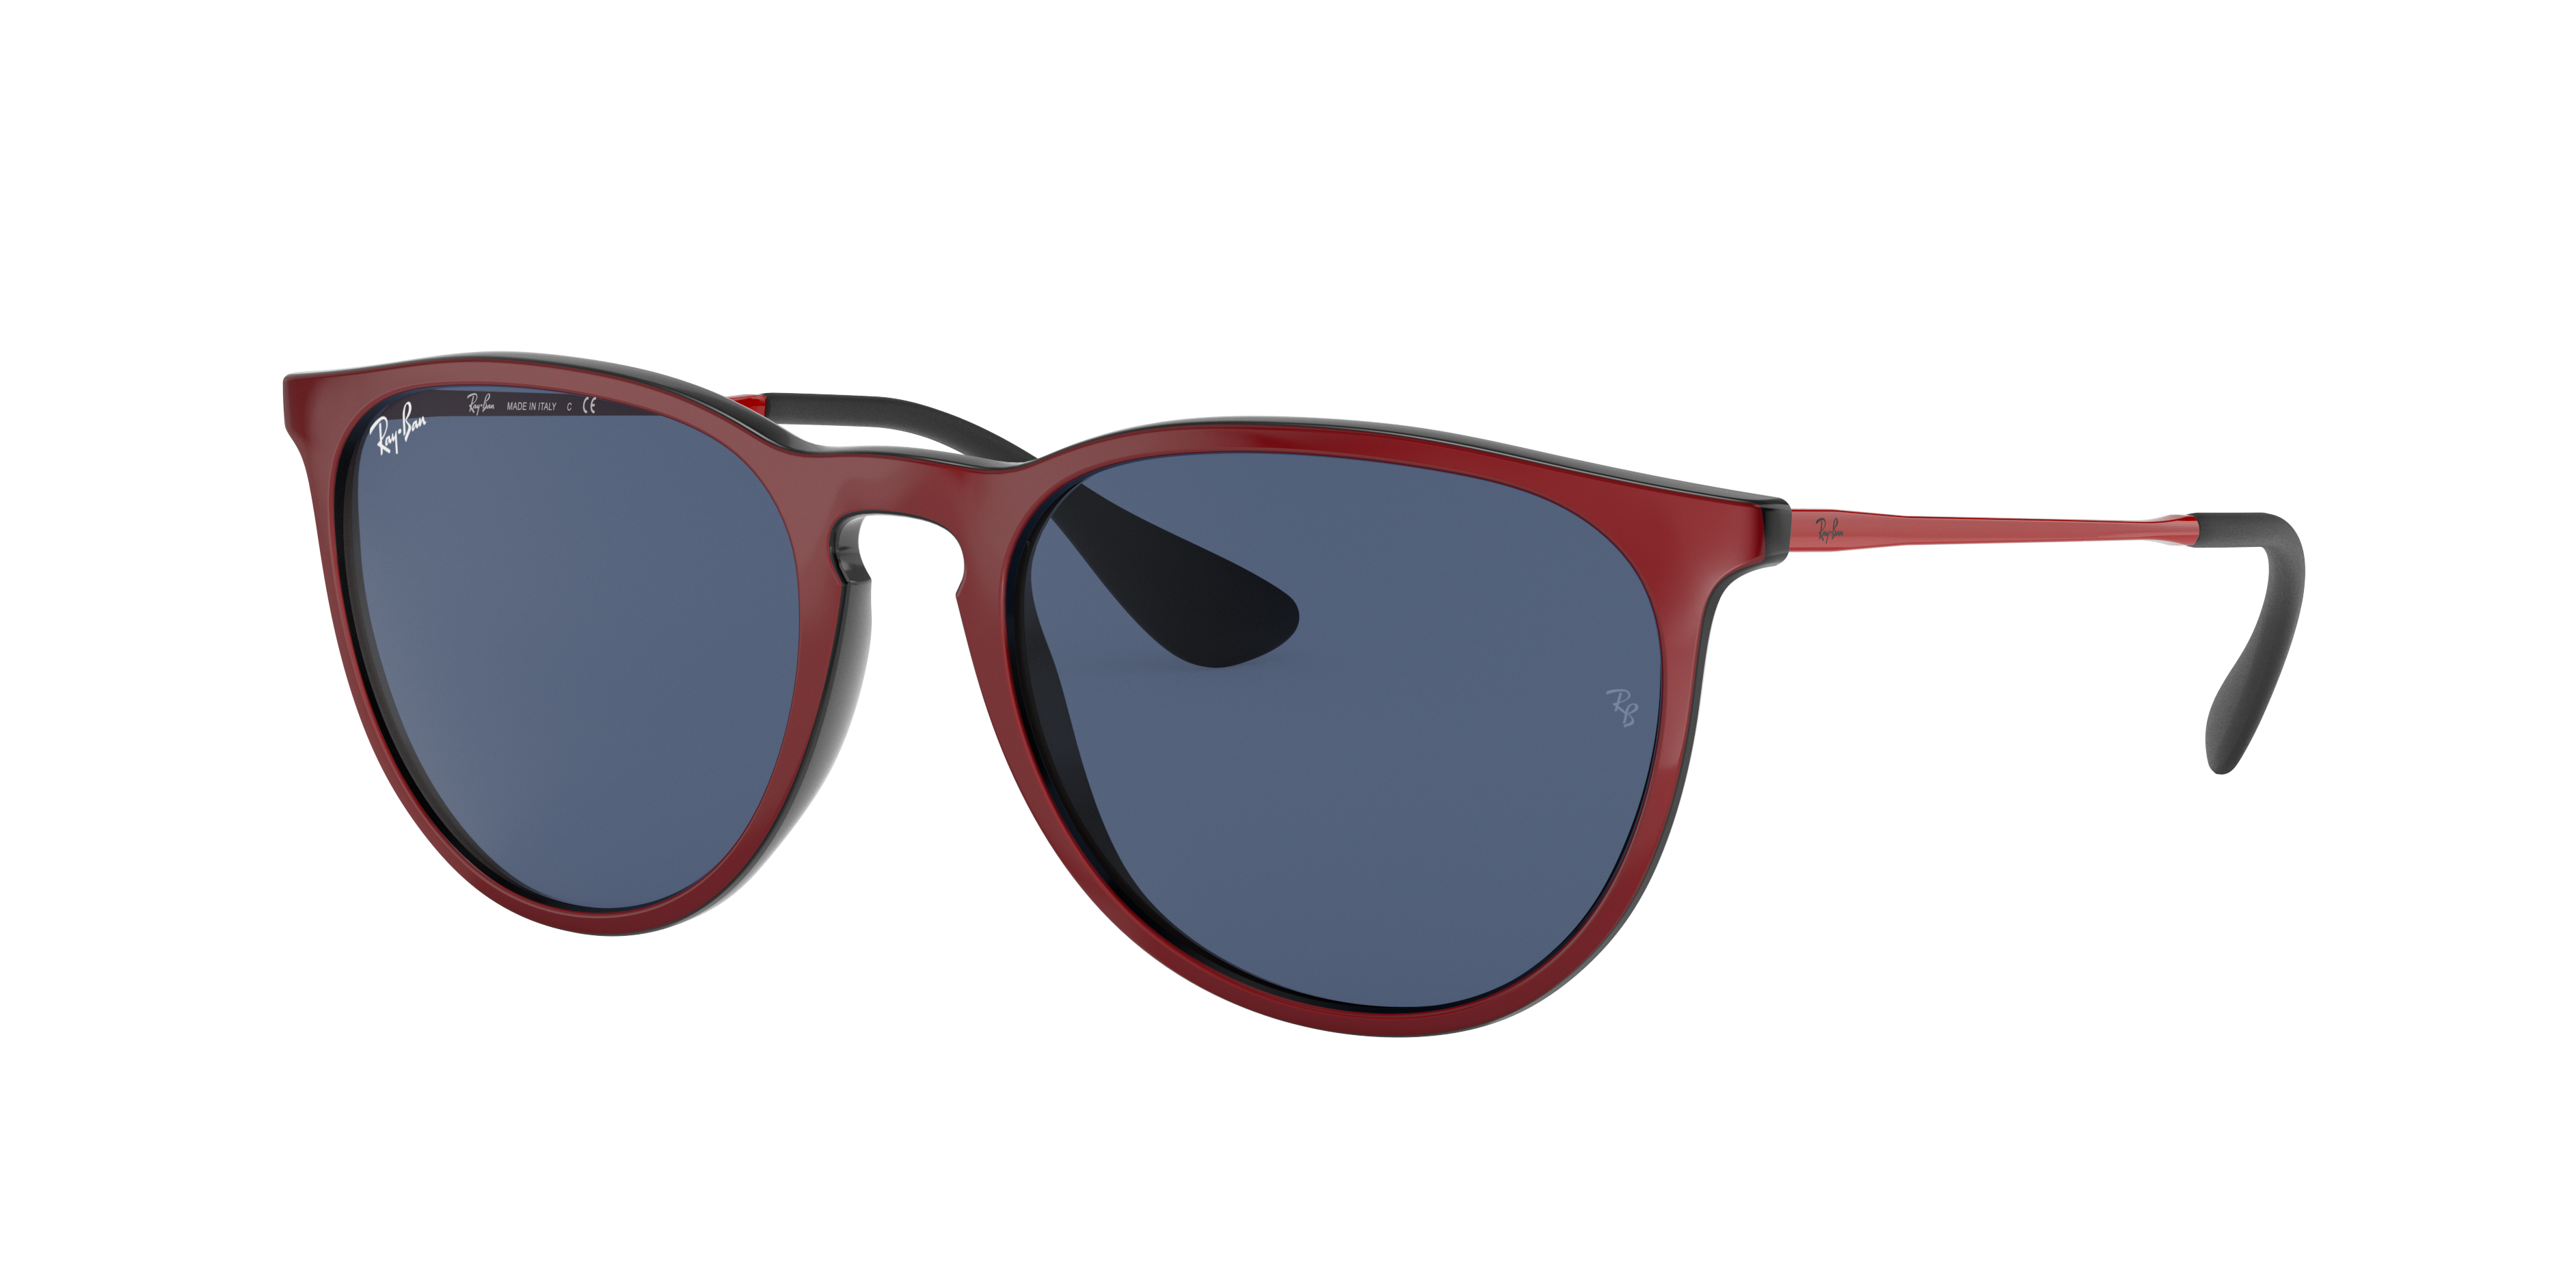 Ray-Ban Erika Color Mix Red Metal, Blue Lenses - RB4171